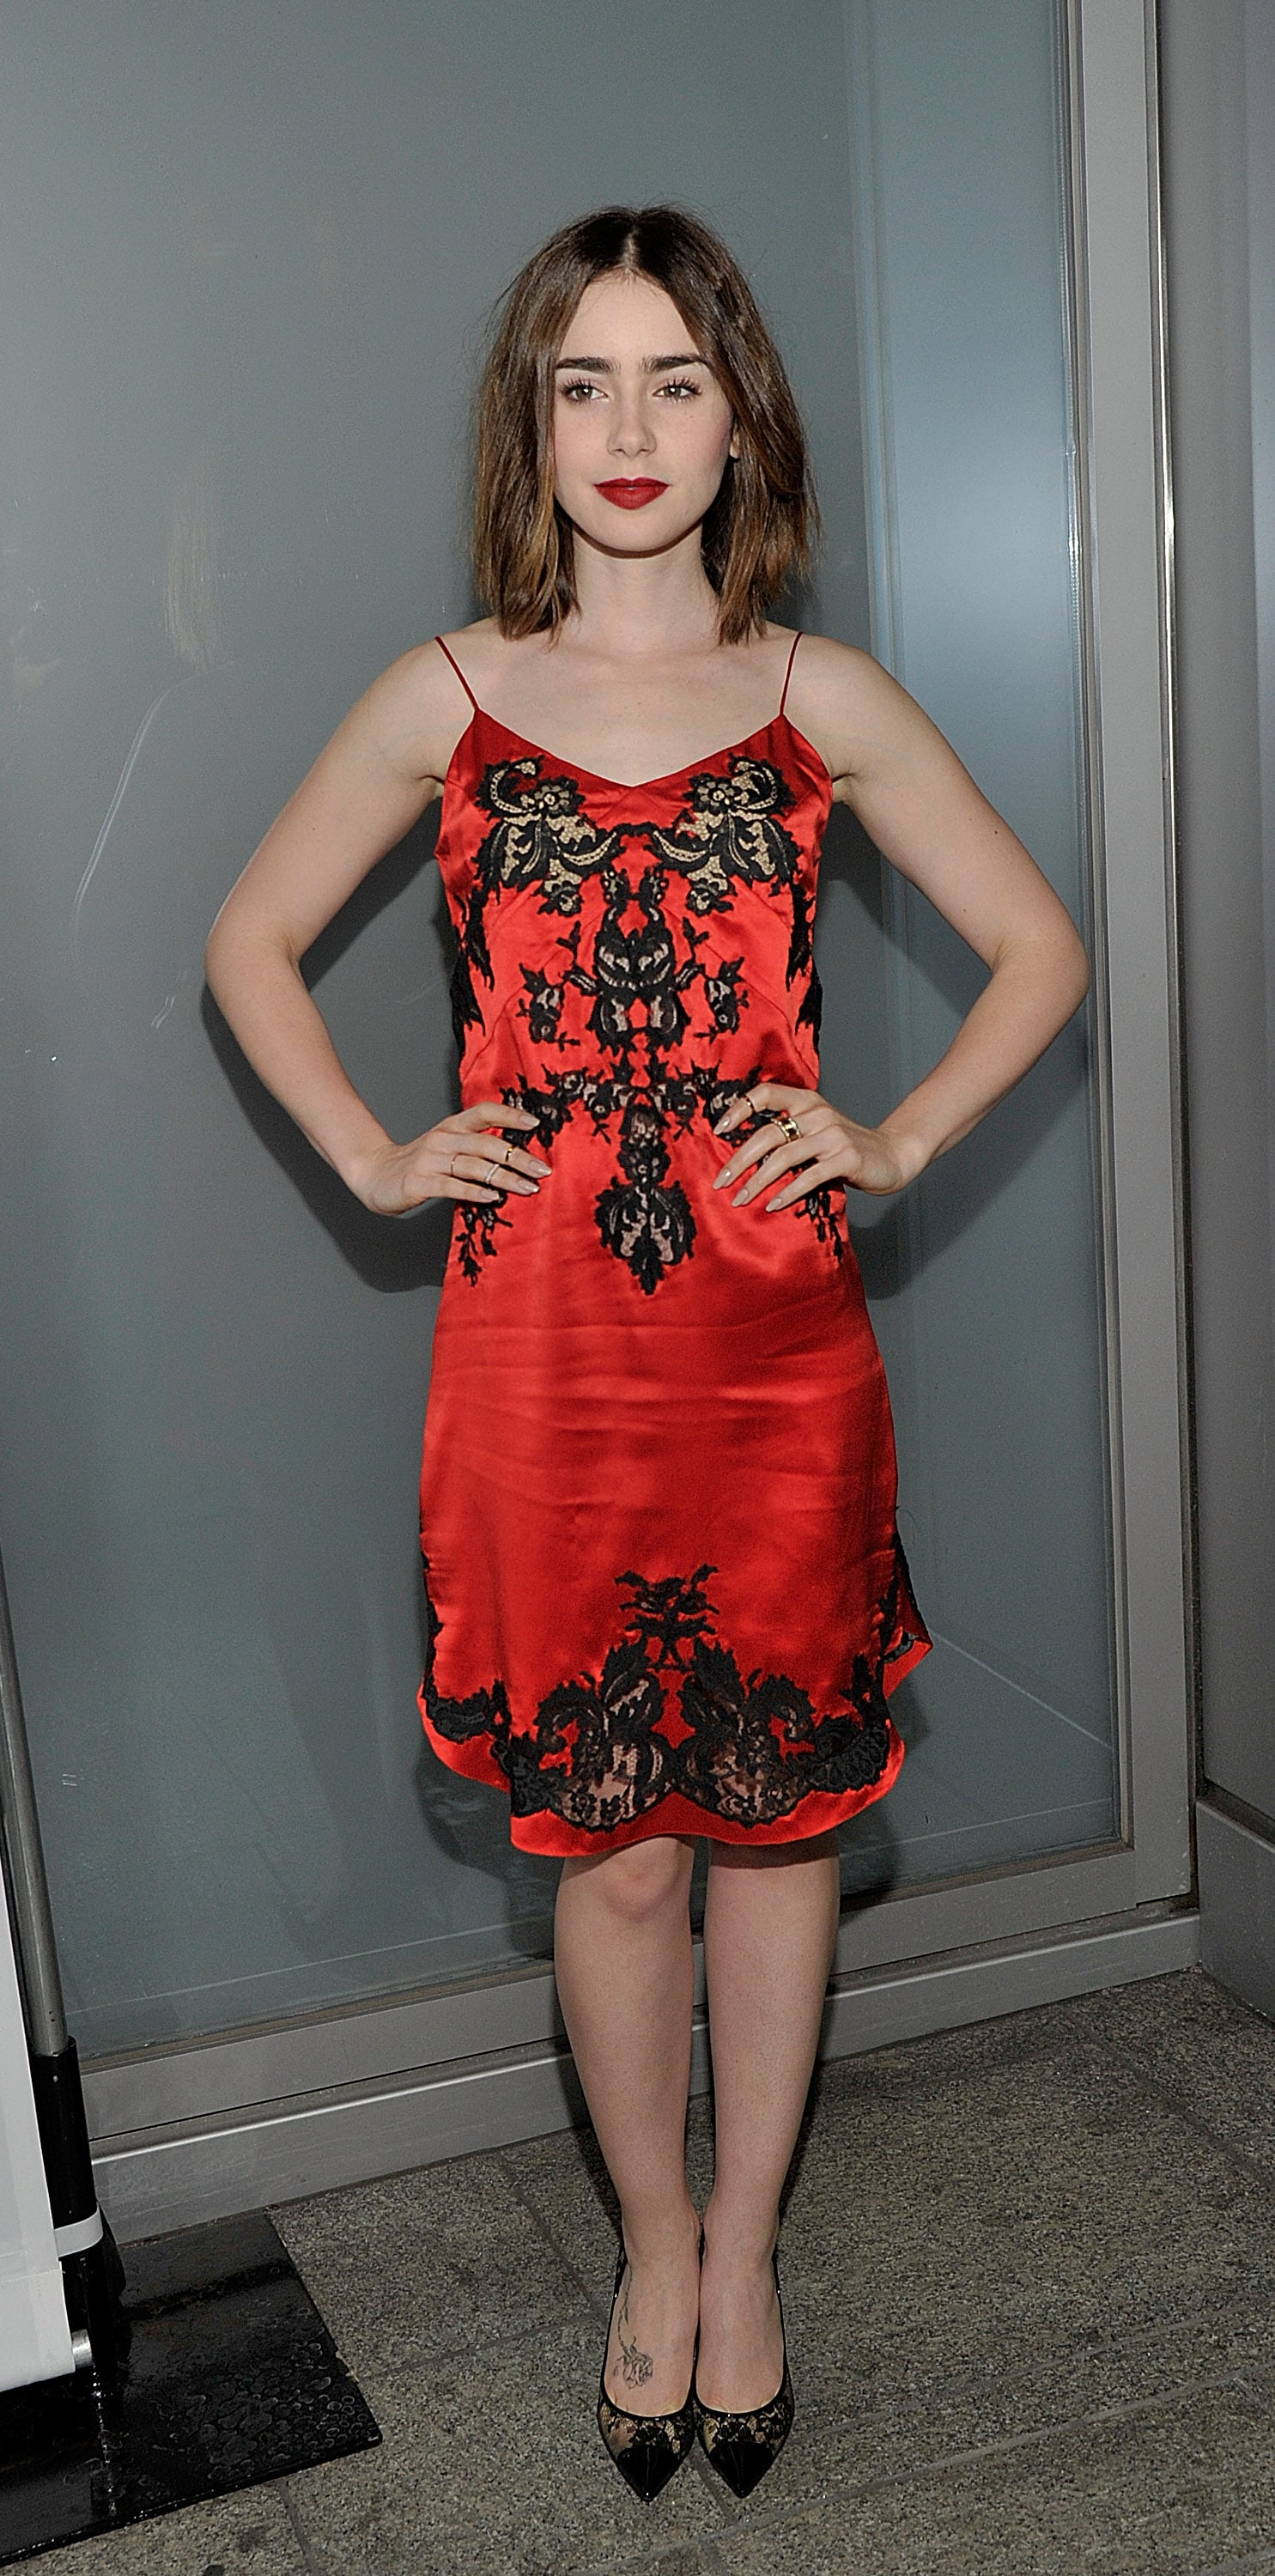 Lily Collins sported a red dress at Flaunt magazine's LA party.